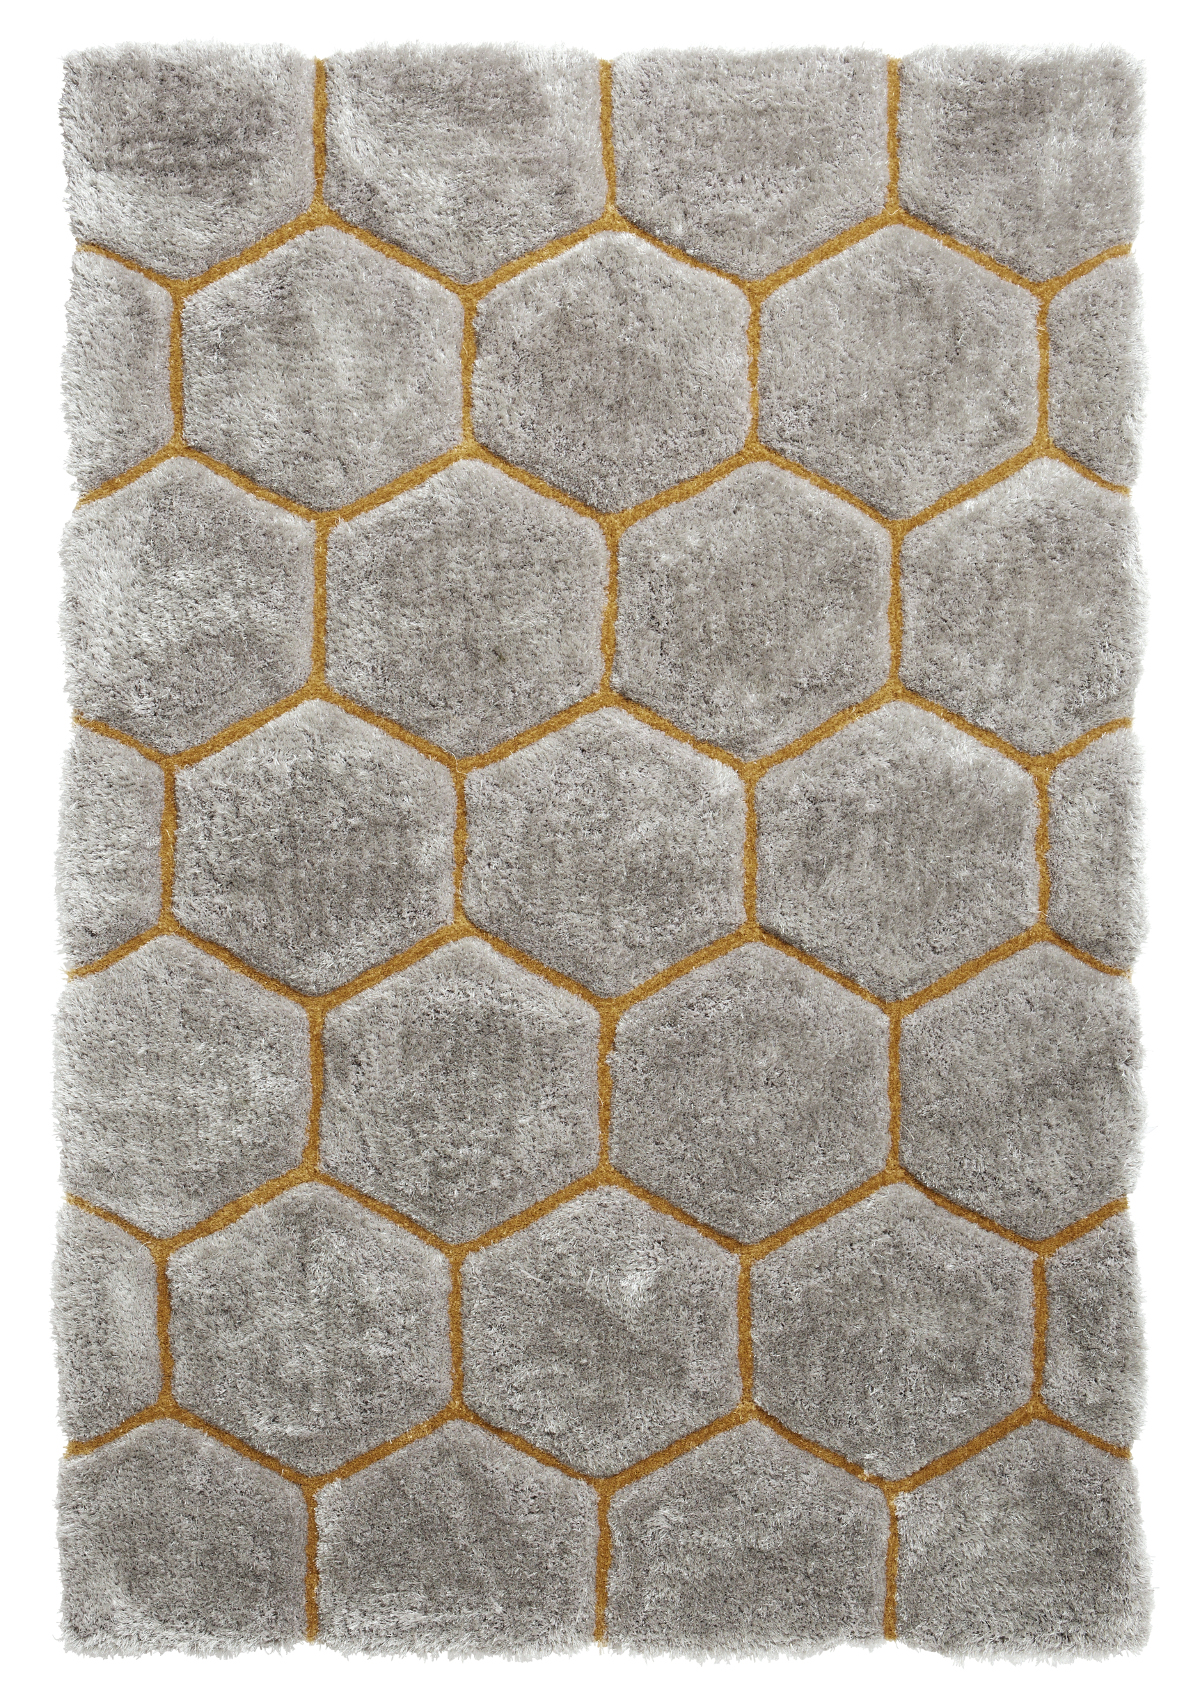 Grey Yellow Hexagon Rug Super Soft Gy Pile Le House Honeycomb Floor Mat